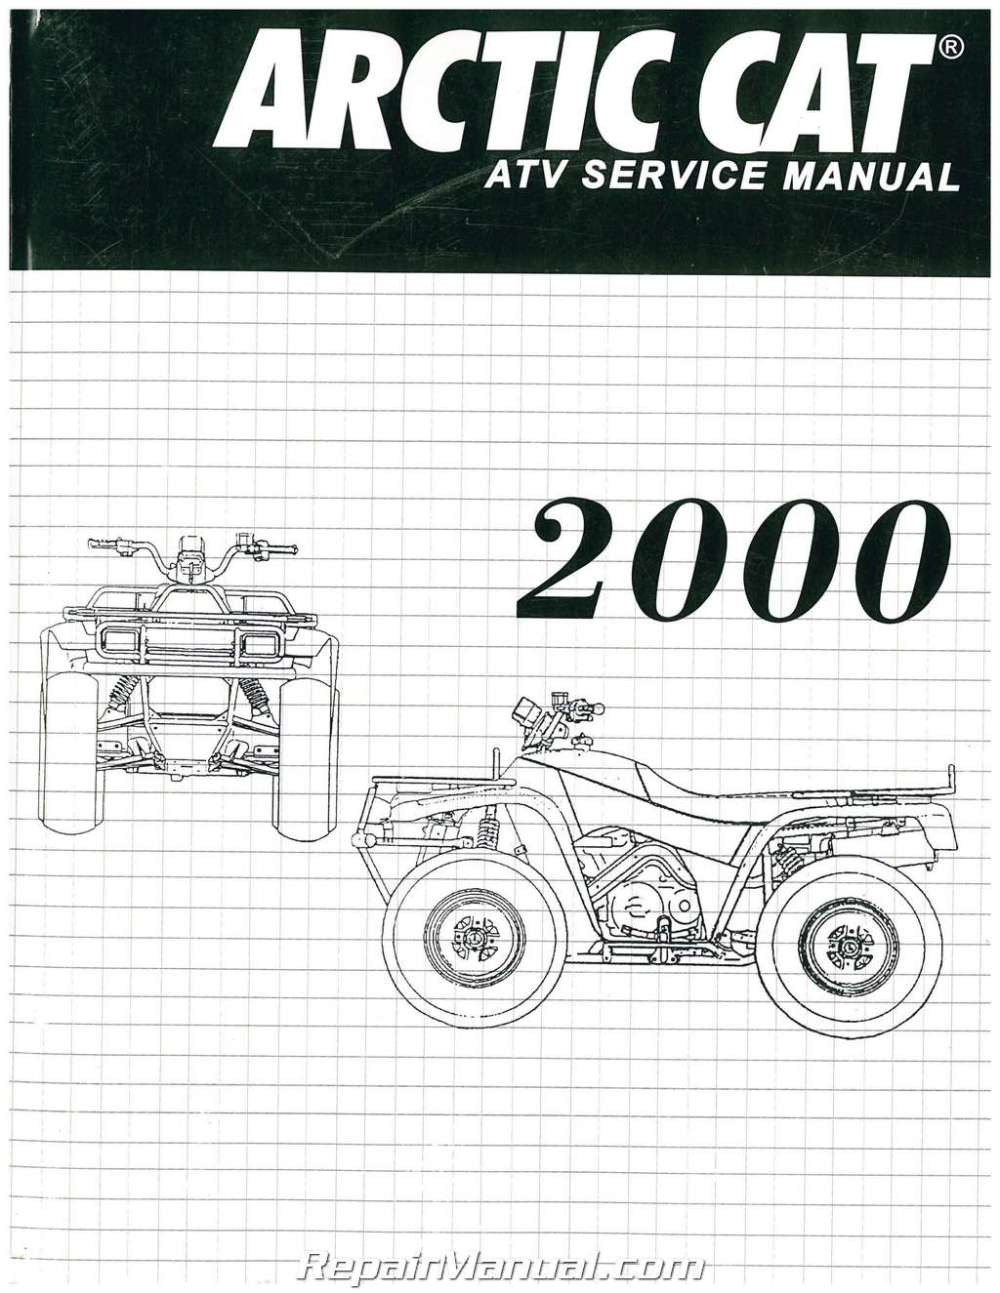 medium resolution of wiring diagram 1998 arctic cat 500 atv wiring resources rh ukgm org 2003 arctic cat 300 4x4 wiring diagram 2000 arctic cat 300 4x4 wiring diagram